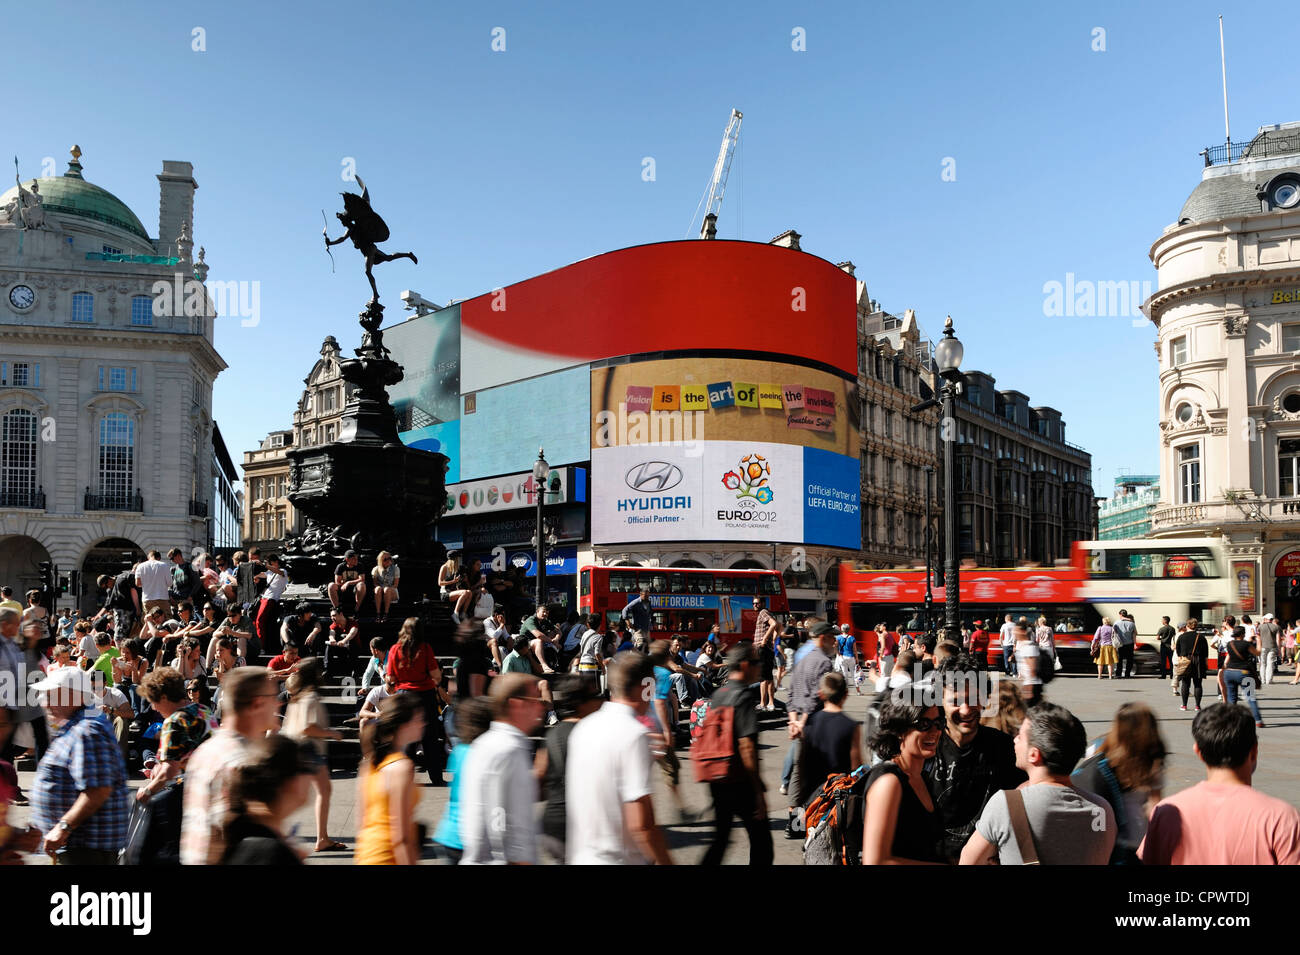 Crowds of tourists at Piccadilly Circus in central London - Stock Image